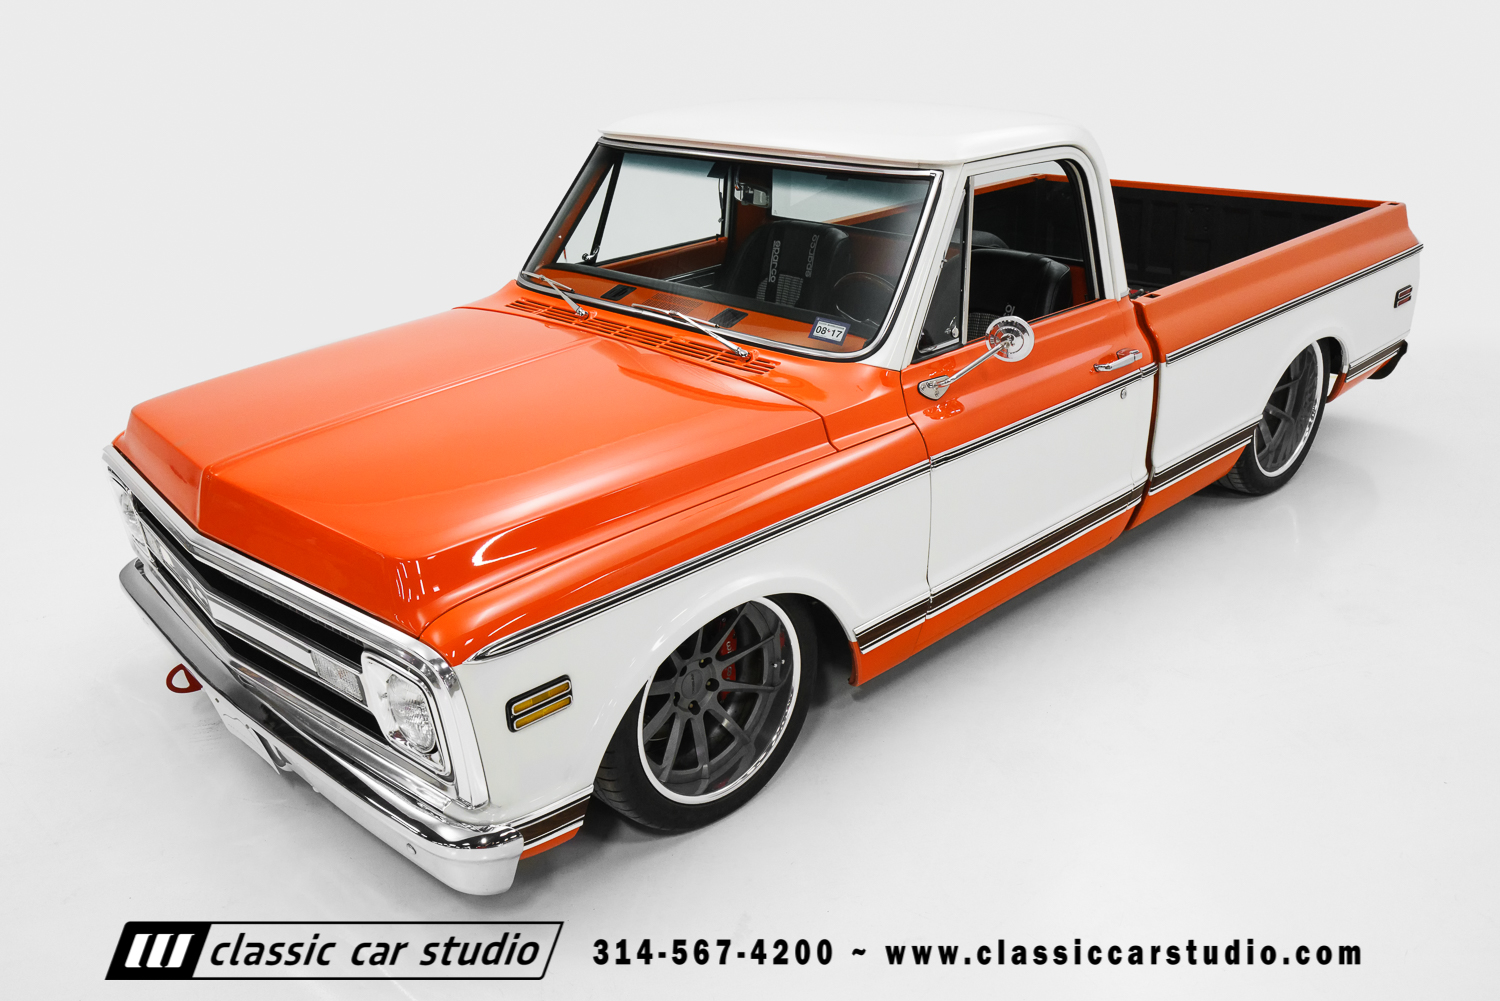 1970 Chevrolet C10 Pro Touring Classic Car Studio 1966 Chevy Trucks For Sale 70 4